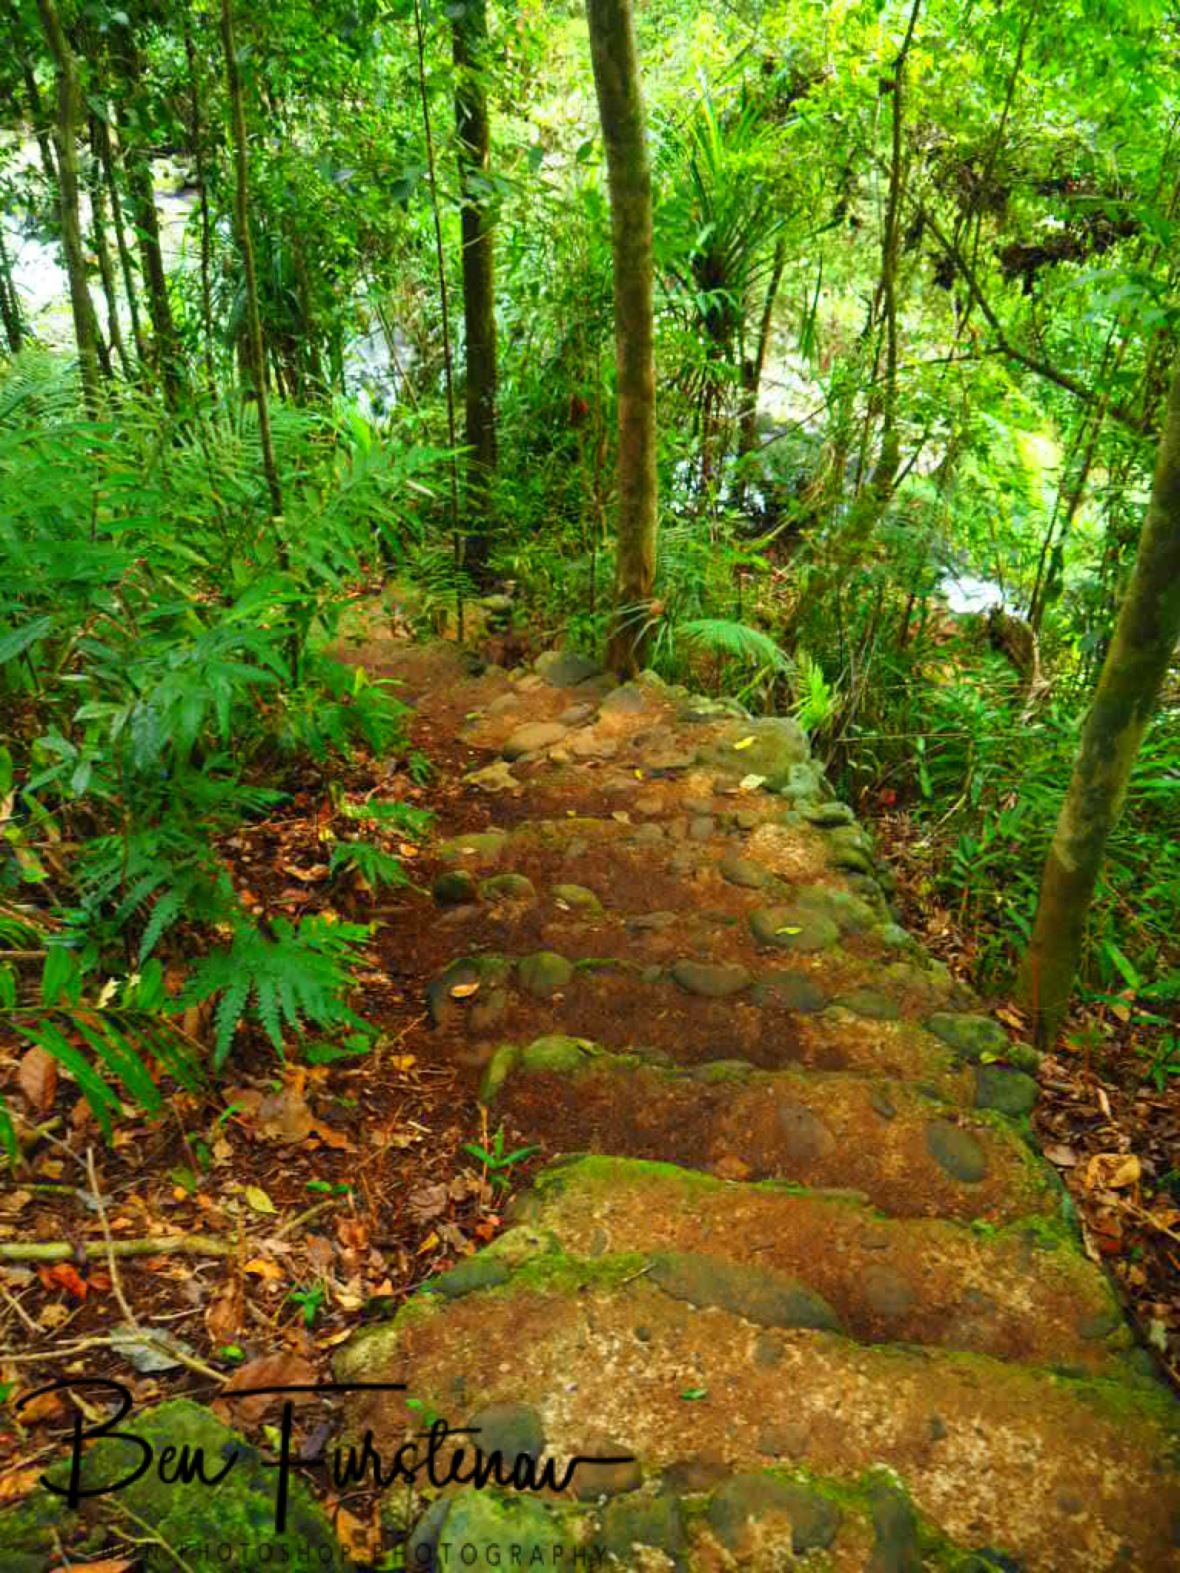 Downhill track to the Souita Falls at Atherton Tablelands, Far North Queensland, Australia